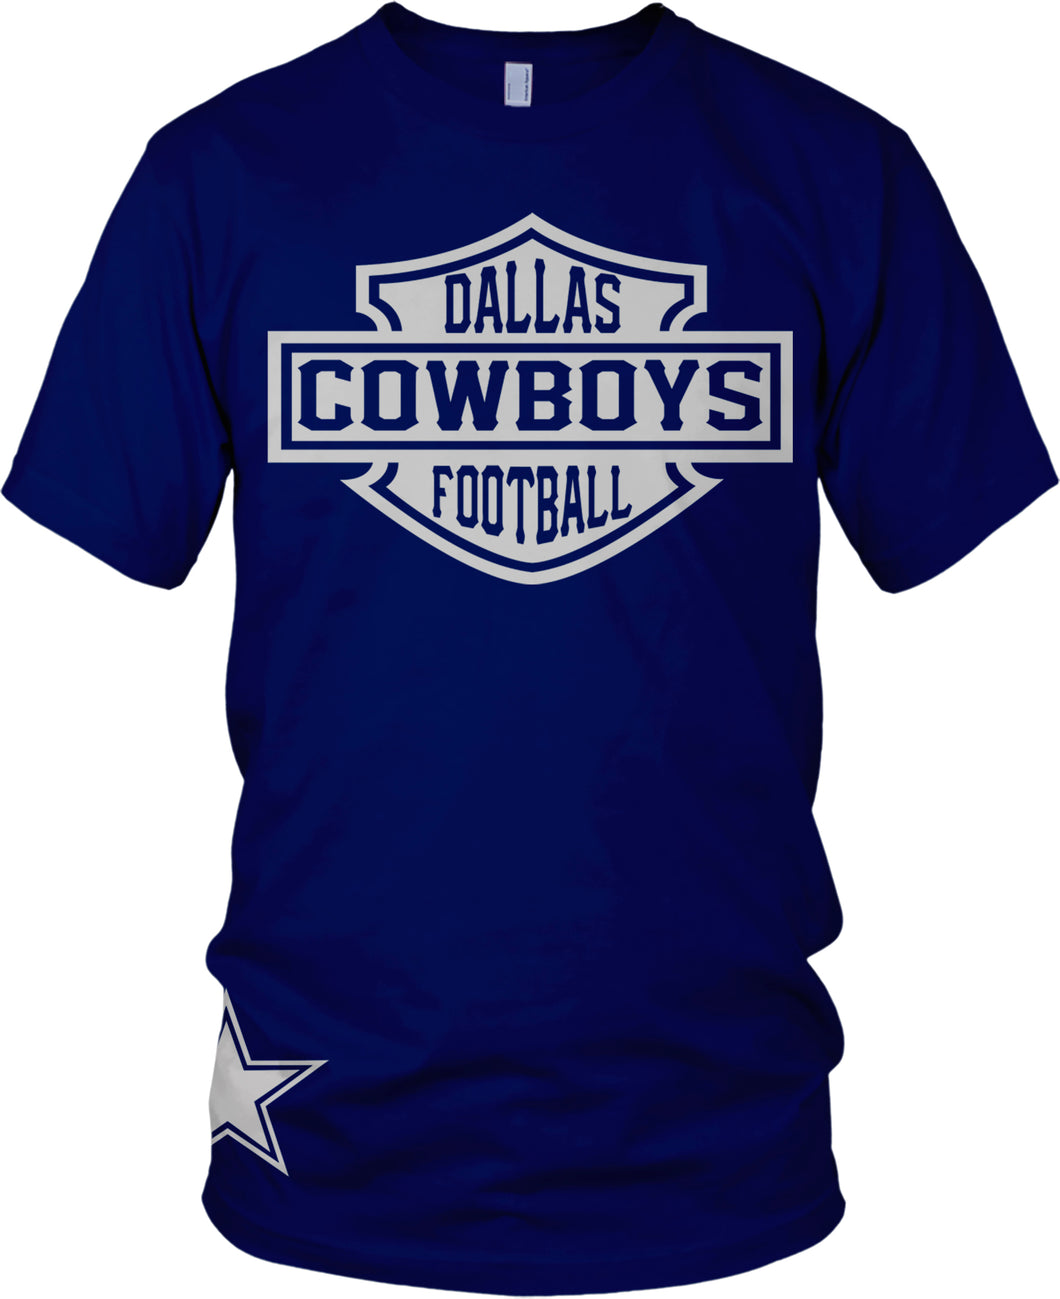 DALLAS COWBOYS NAVY T-SHIRT (LIMITED EDITION)